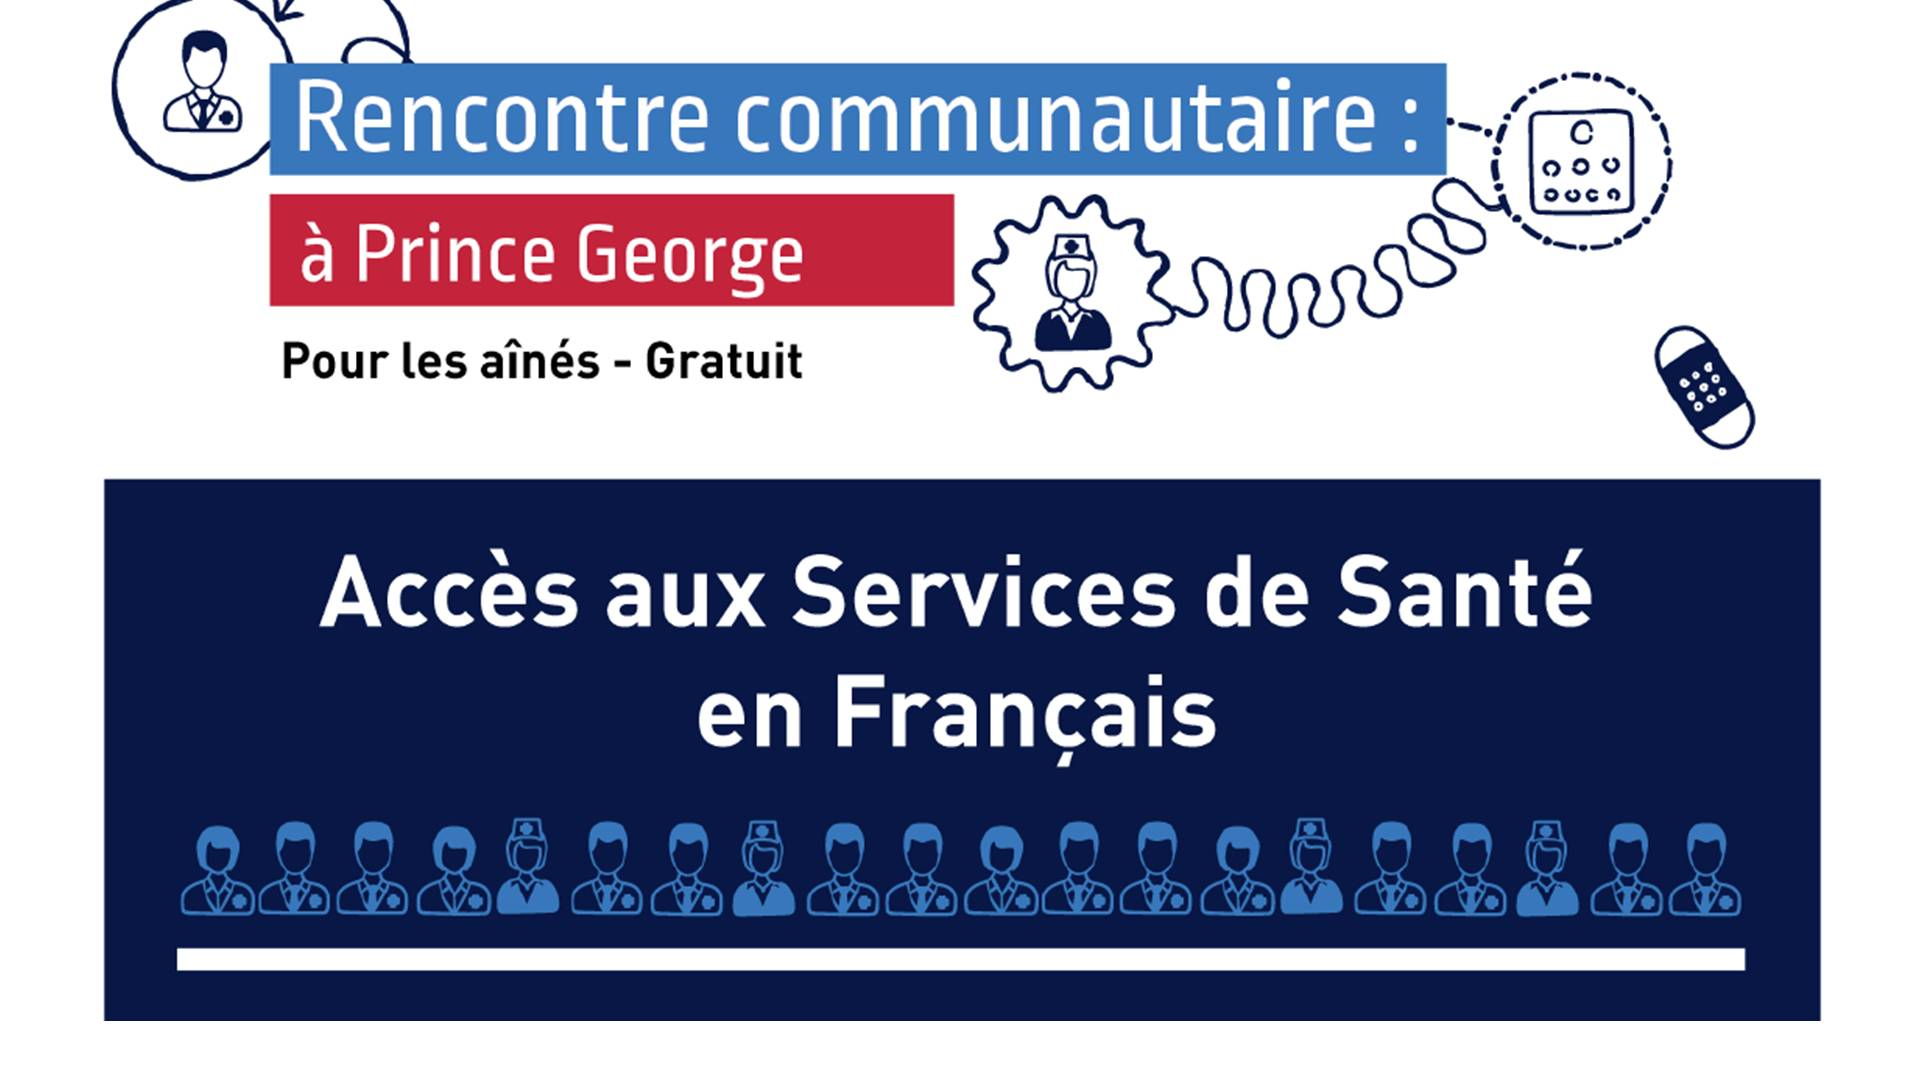 banniere prince george rencontre communautaire